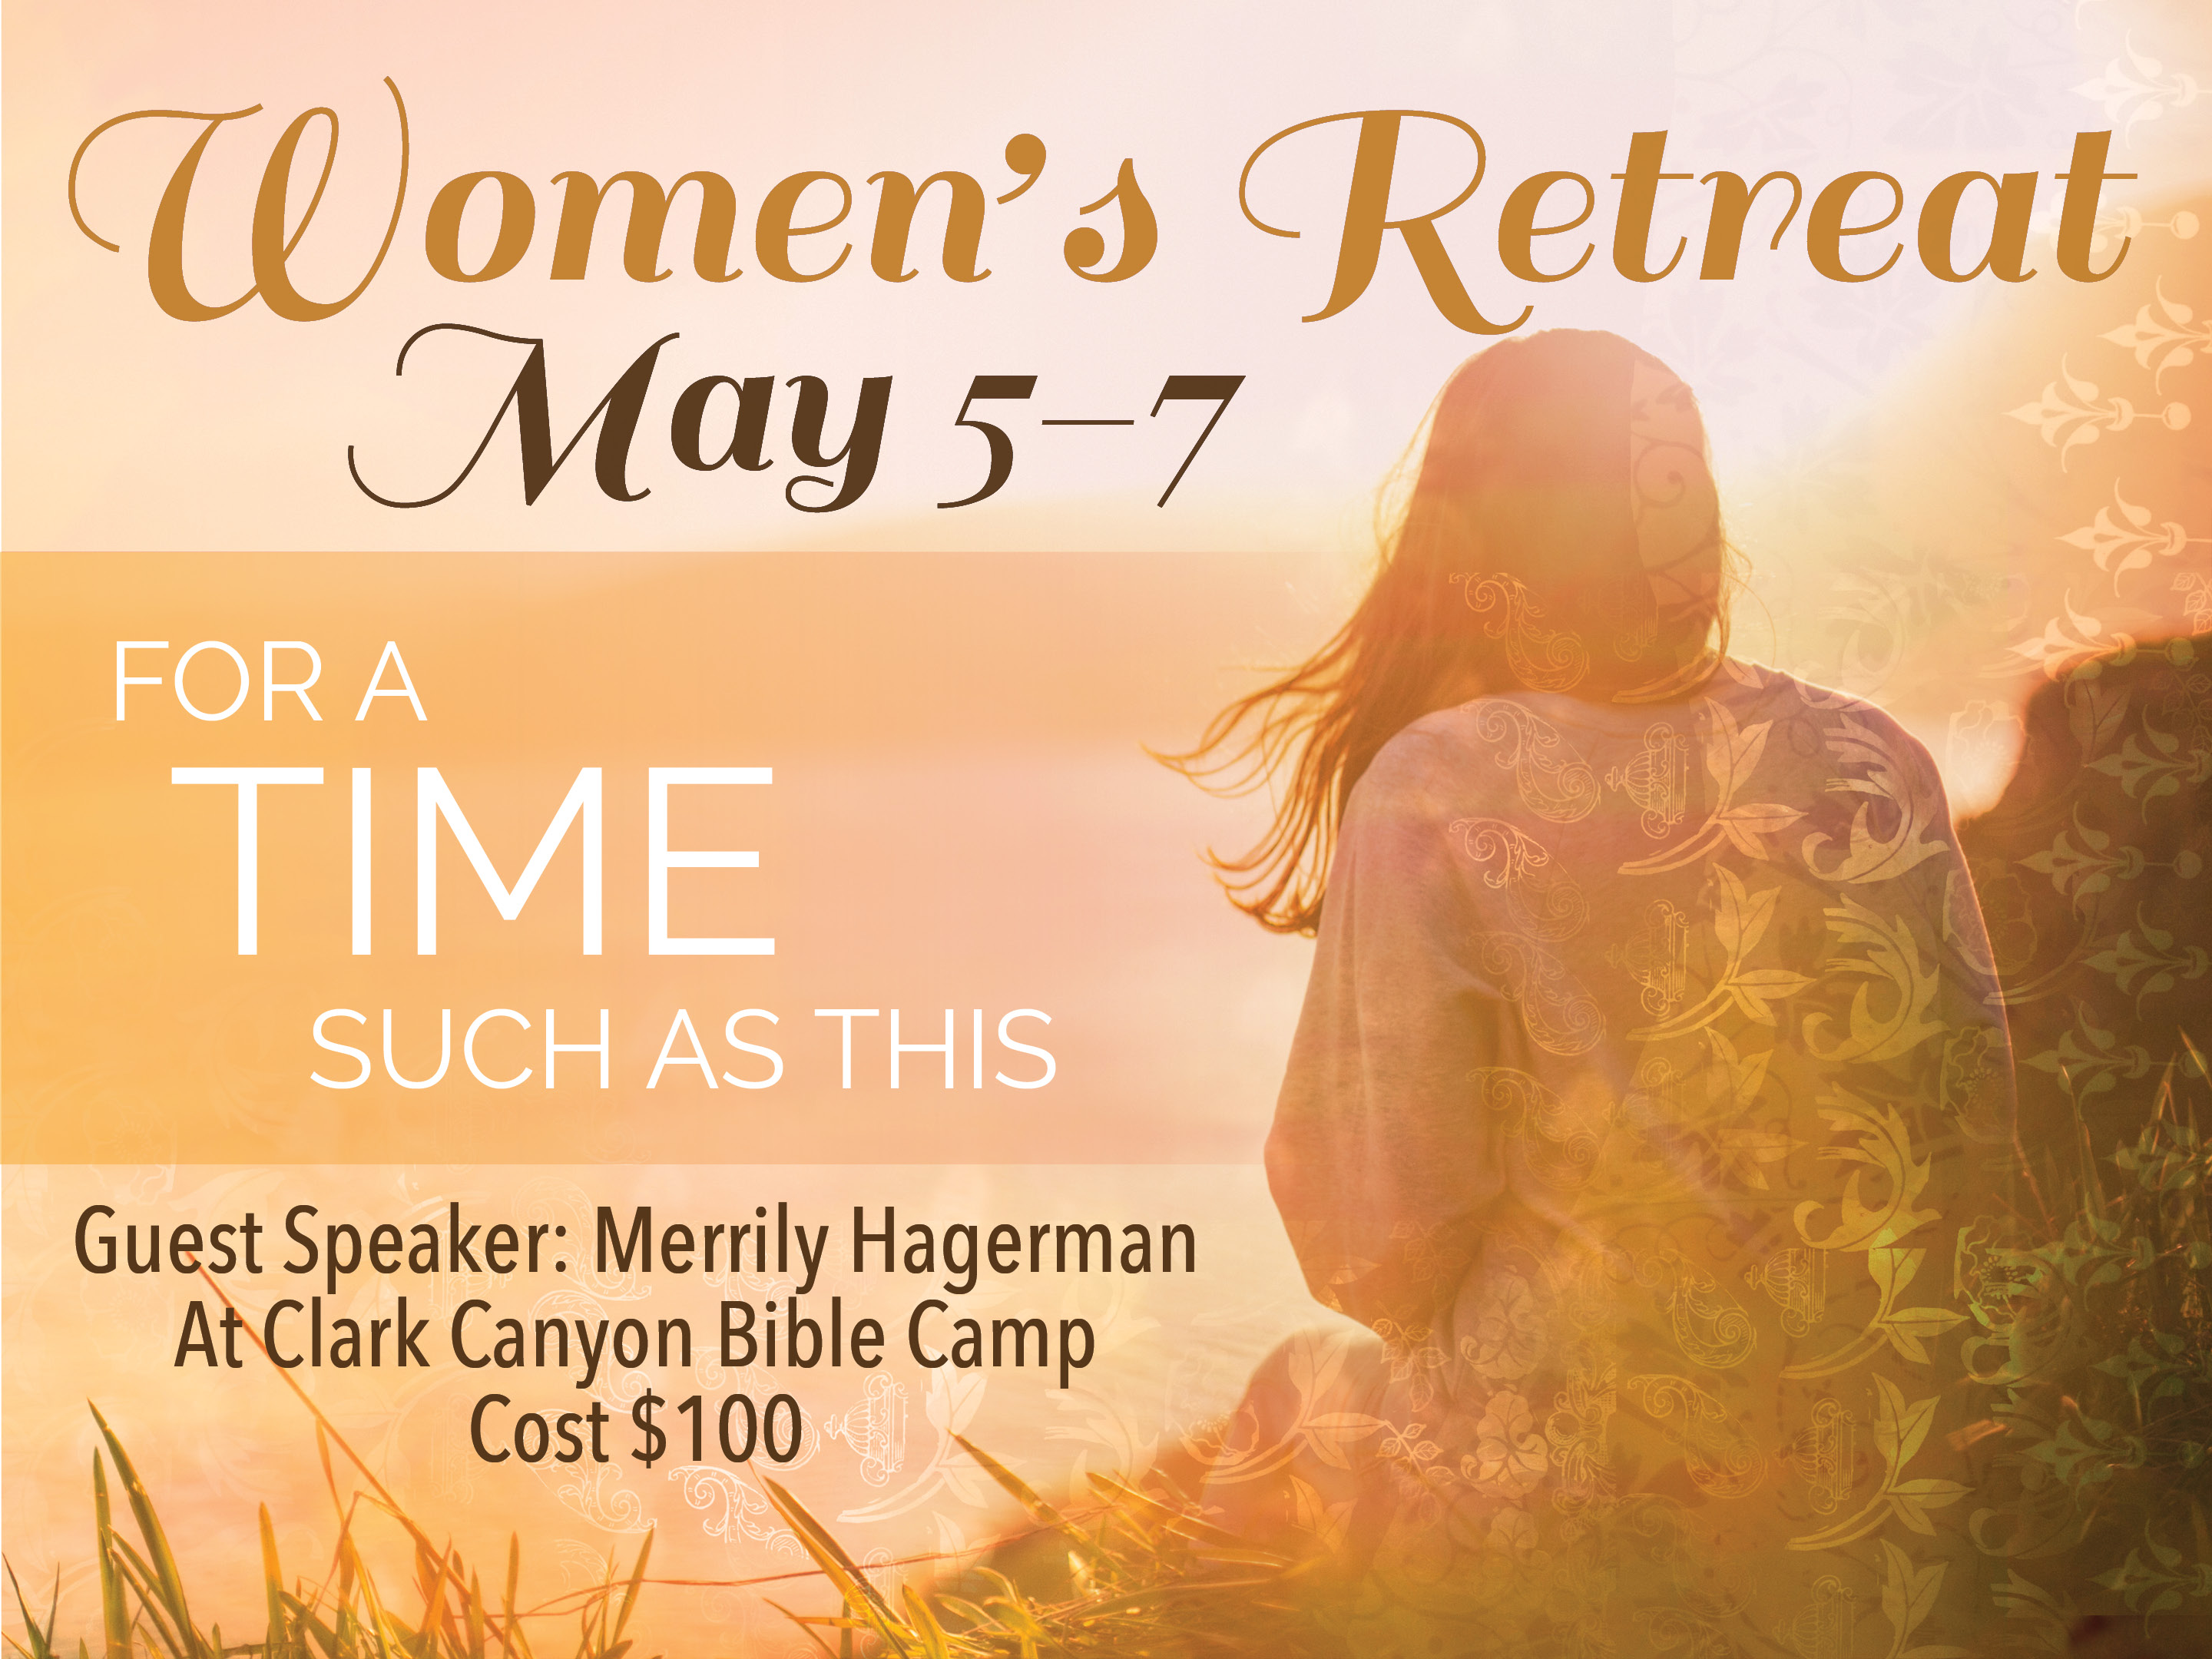 Ccb   2017 women s retreat announcment